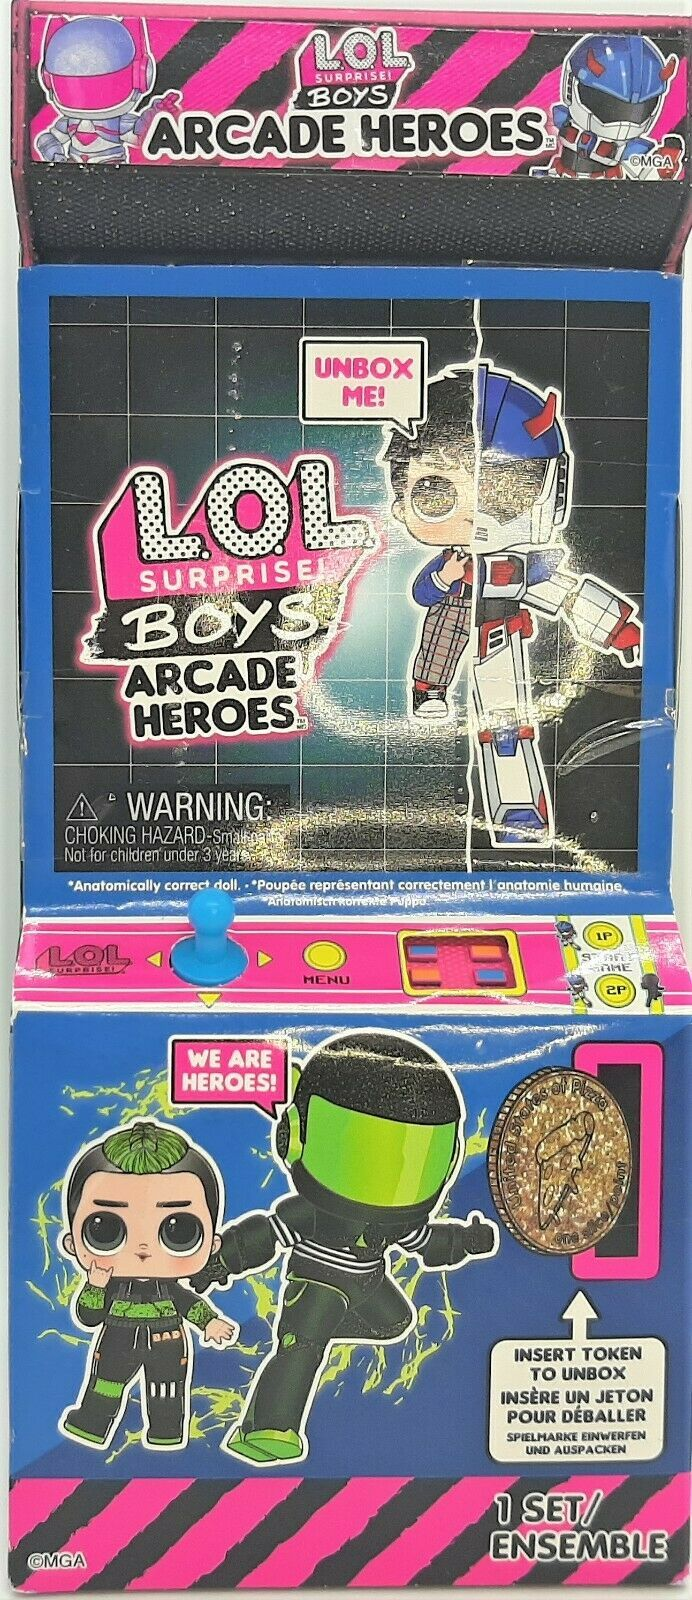 Primary image for L.O.L. Surprise Boys Arcade Heroes ~ 15 Surprises including 6 piece Hero suit